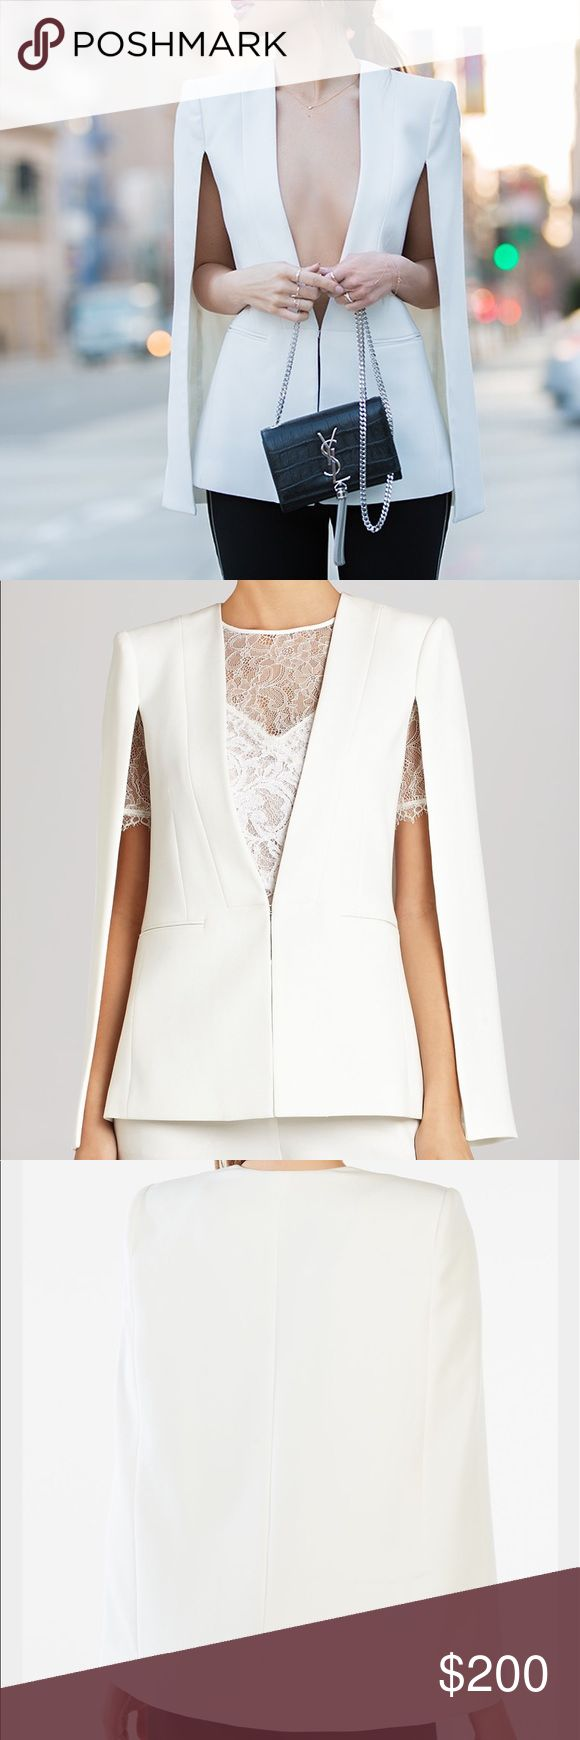 """BCBG MAX AZRIA • NWOT • """"Upas"""" cape blazer New without tag. White Upas BCBG Max Azria blazer cape. Super chic, sophisticated, and unique blazer / cape. Purchased from a local BCBG MAX AZRIA store. I never wore it. I'm not trading at this point. Thanks for looking  BCBGMaxAzria Jackets & Coats Blazers"""